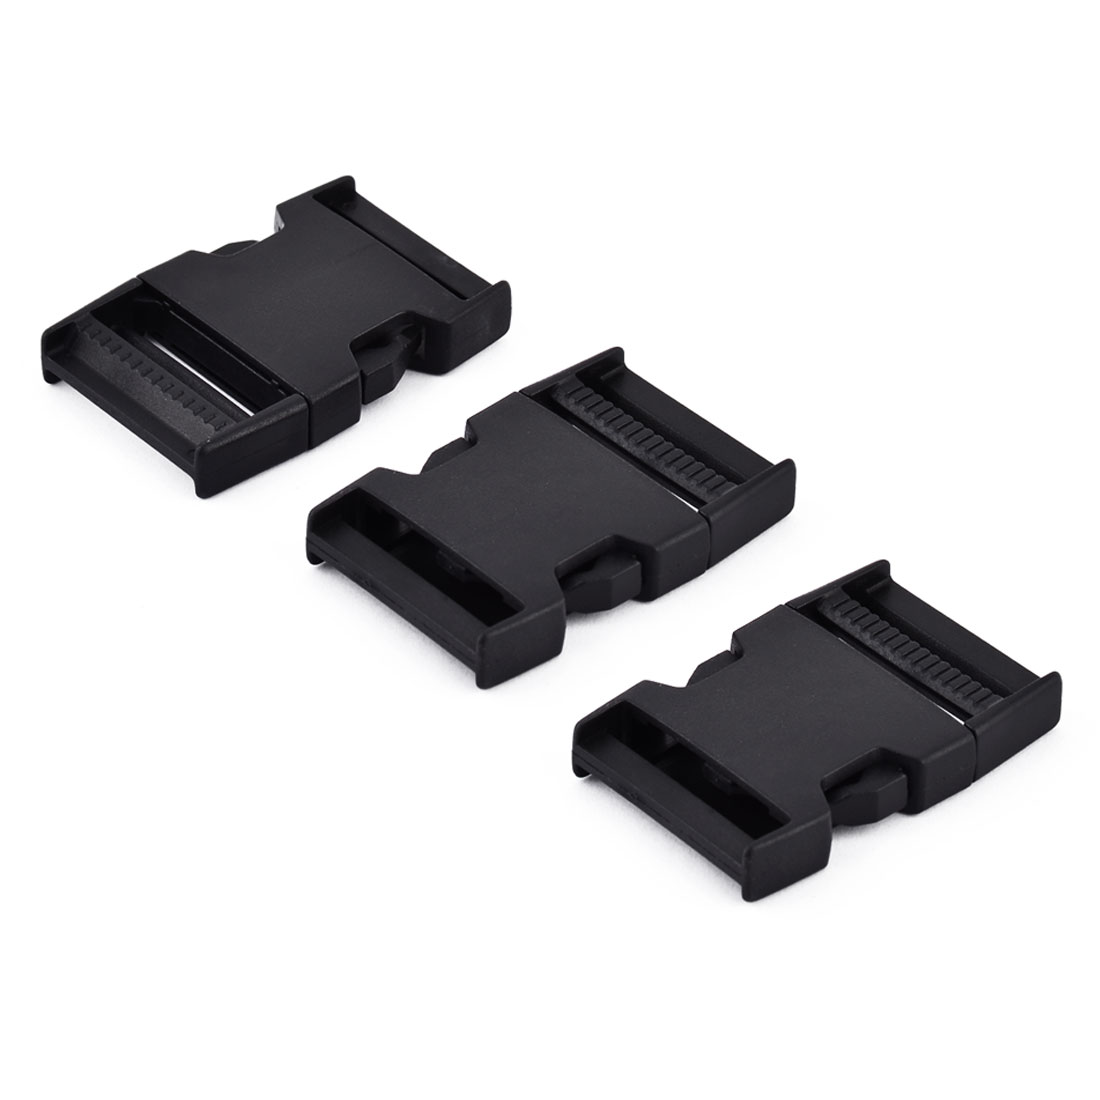 Plastic Quick Side Release Buckle Nylon Buckle Black 68 x 45 x 13mm 3 Pcs